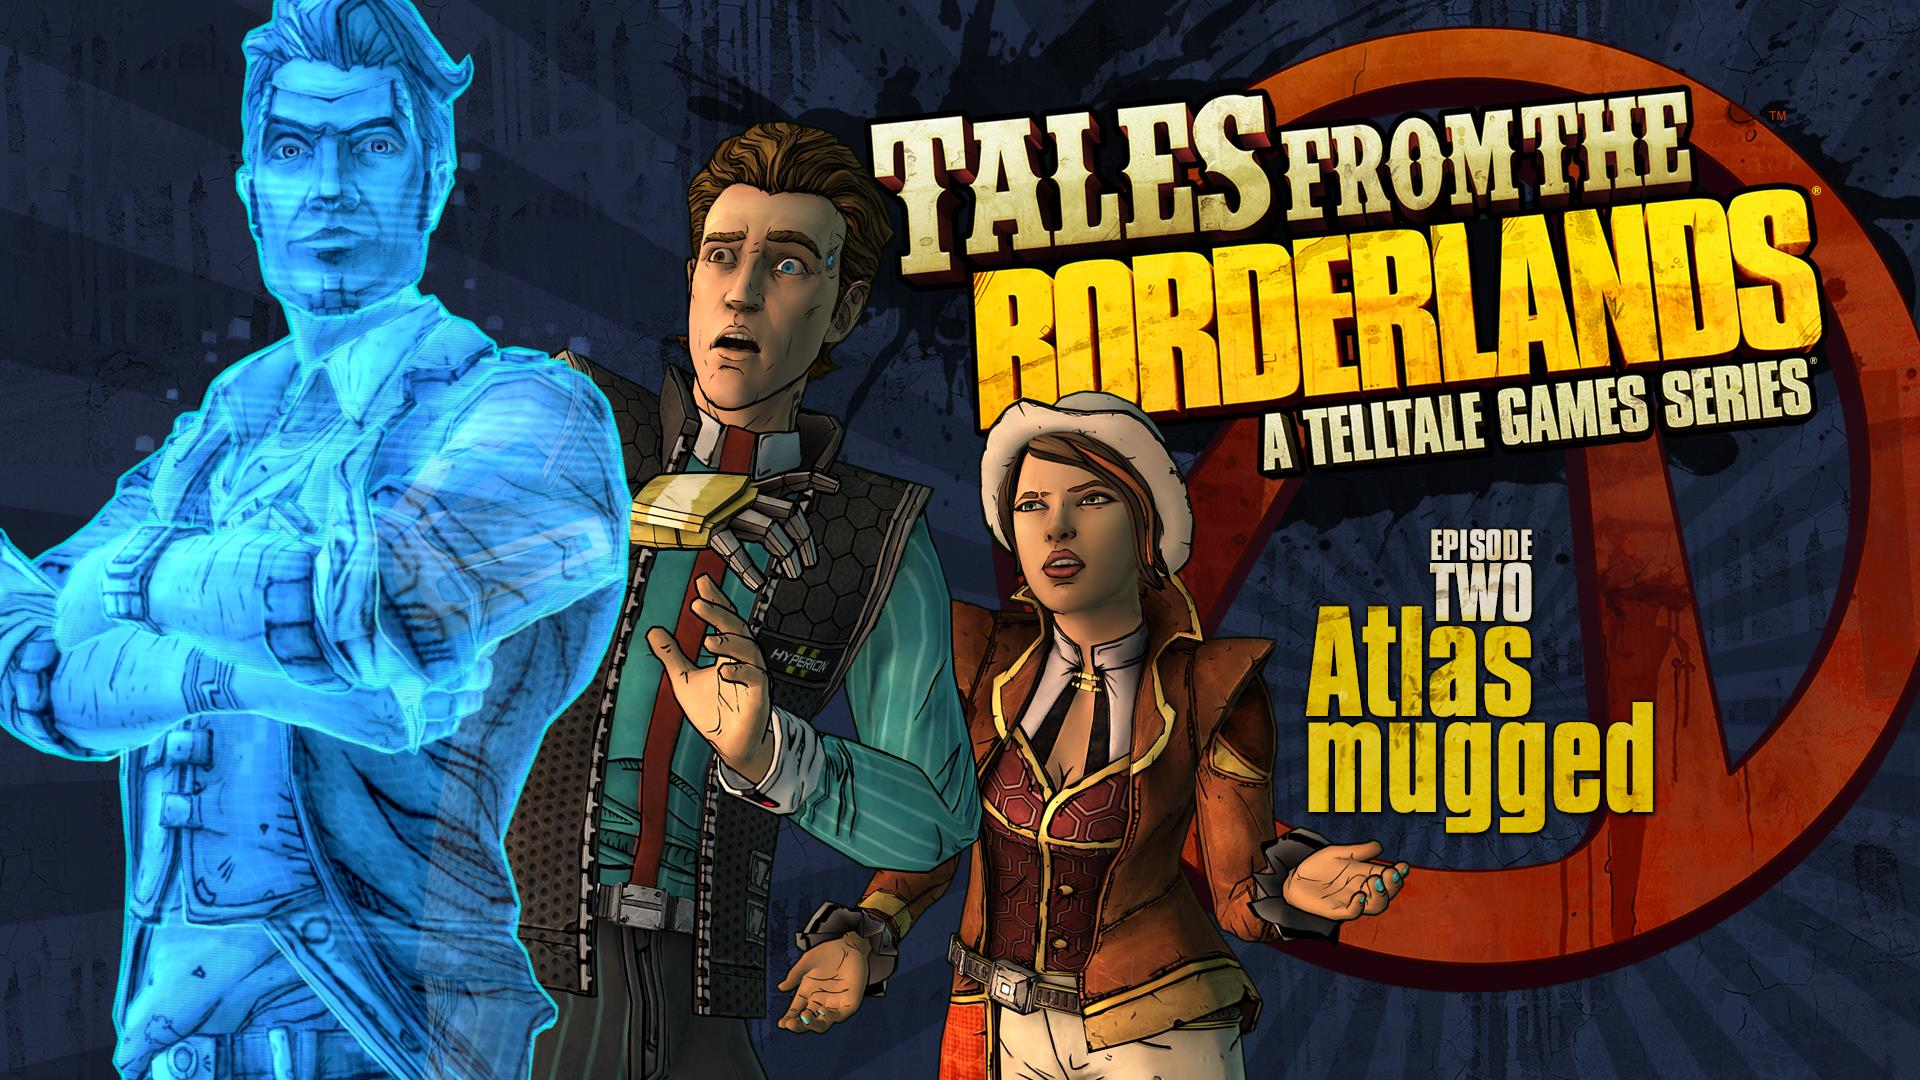 Tales From The Borderlands Episode 2 Trailer Features